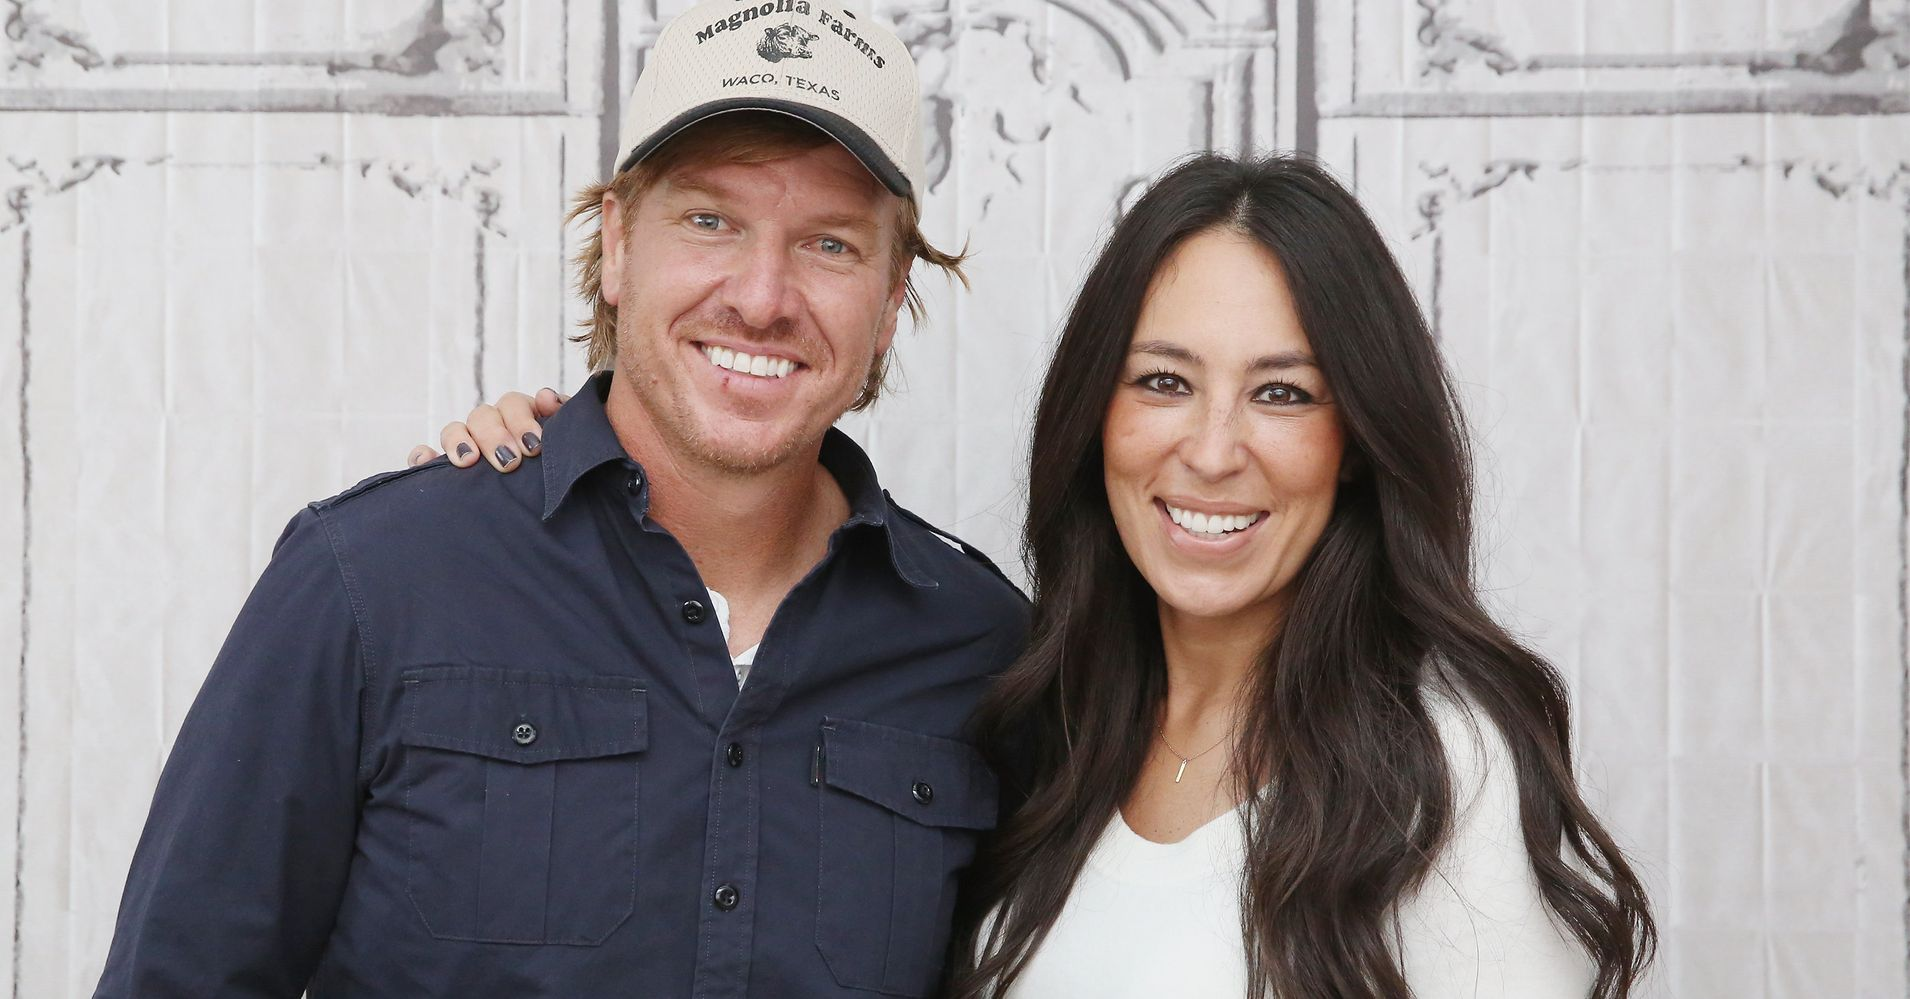 hgtv responds to chip and joanna gaines 39 anti gay church controversy huffpost. Black Bedroom Furniture Sets. Home Design Ideas